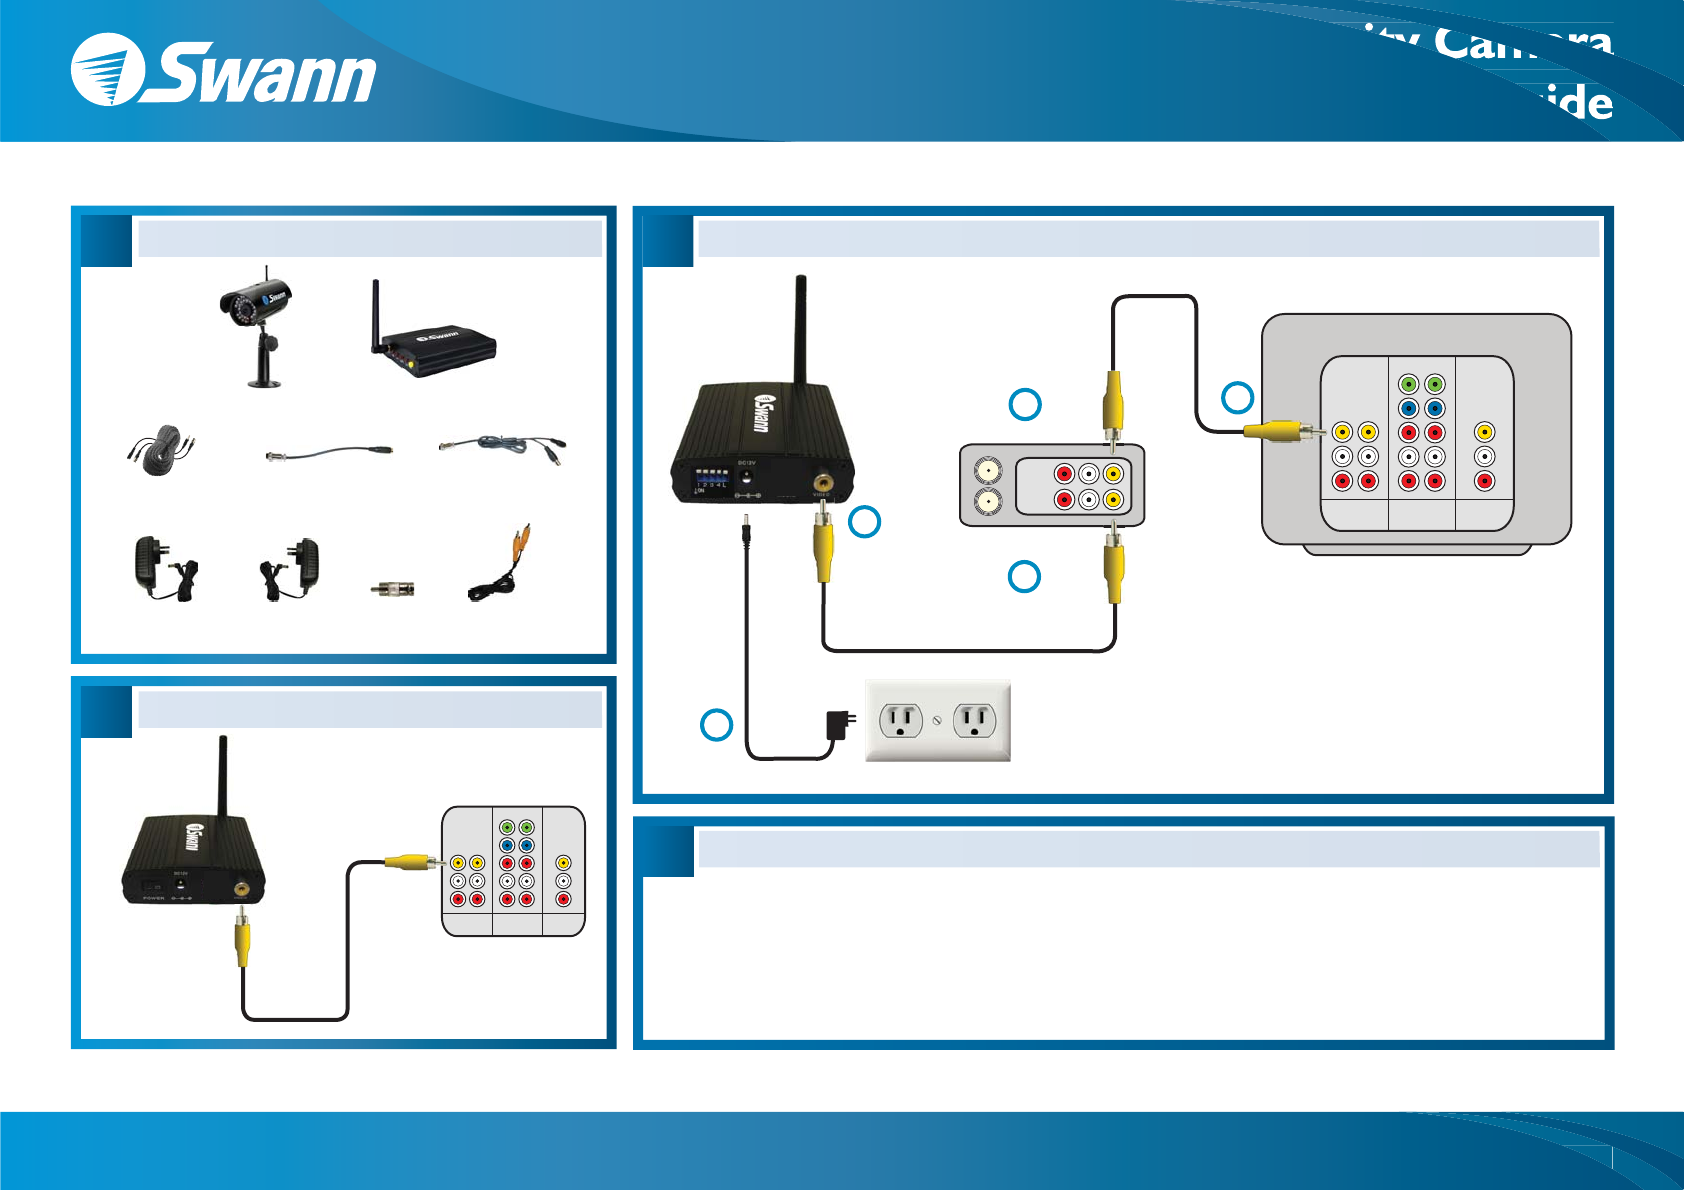 c6bd6806 a746 4b78 9f26 80134f634056 bg1 swann security camera ppw 250 user guide manualsonline com swann wireless camera wiring diagram at gsmx.co